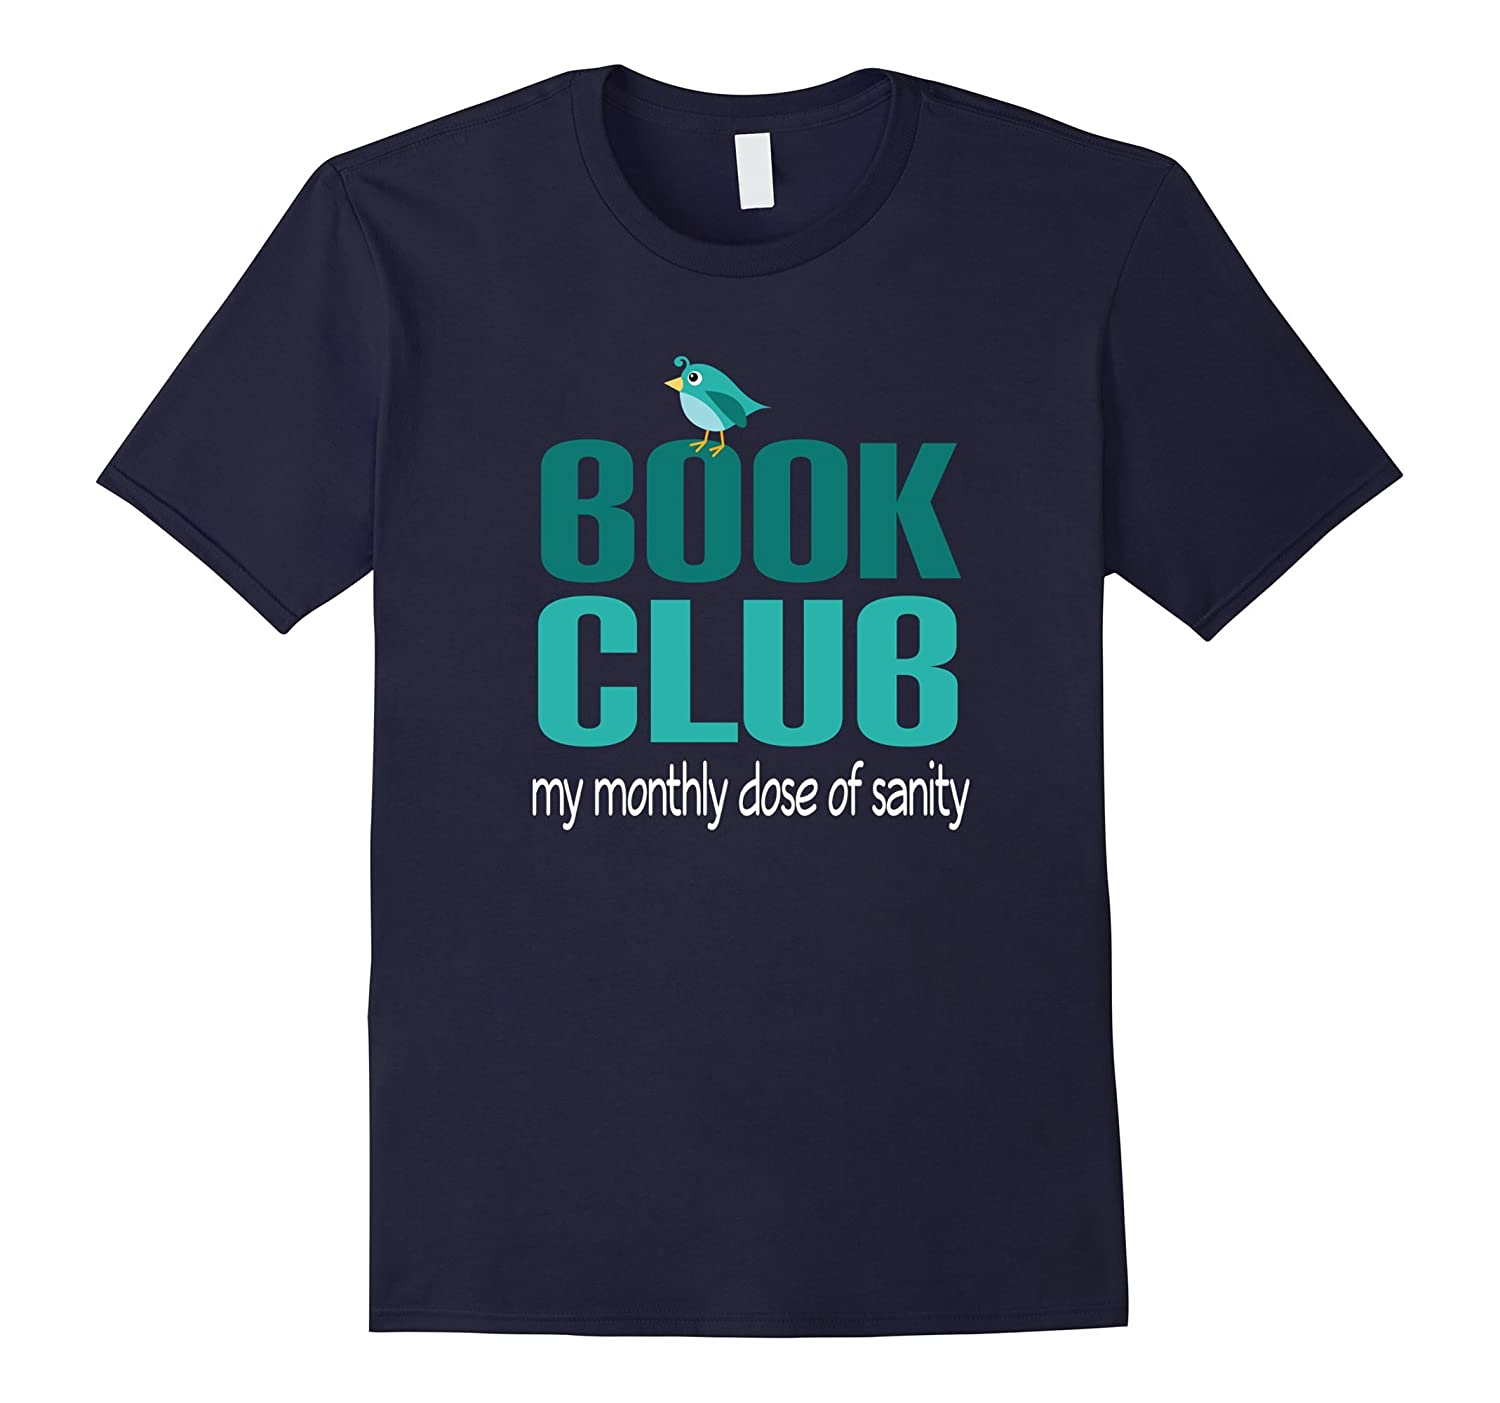 Book Club T-shirt Funny Monthly Reading Group Gift Tee-CL